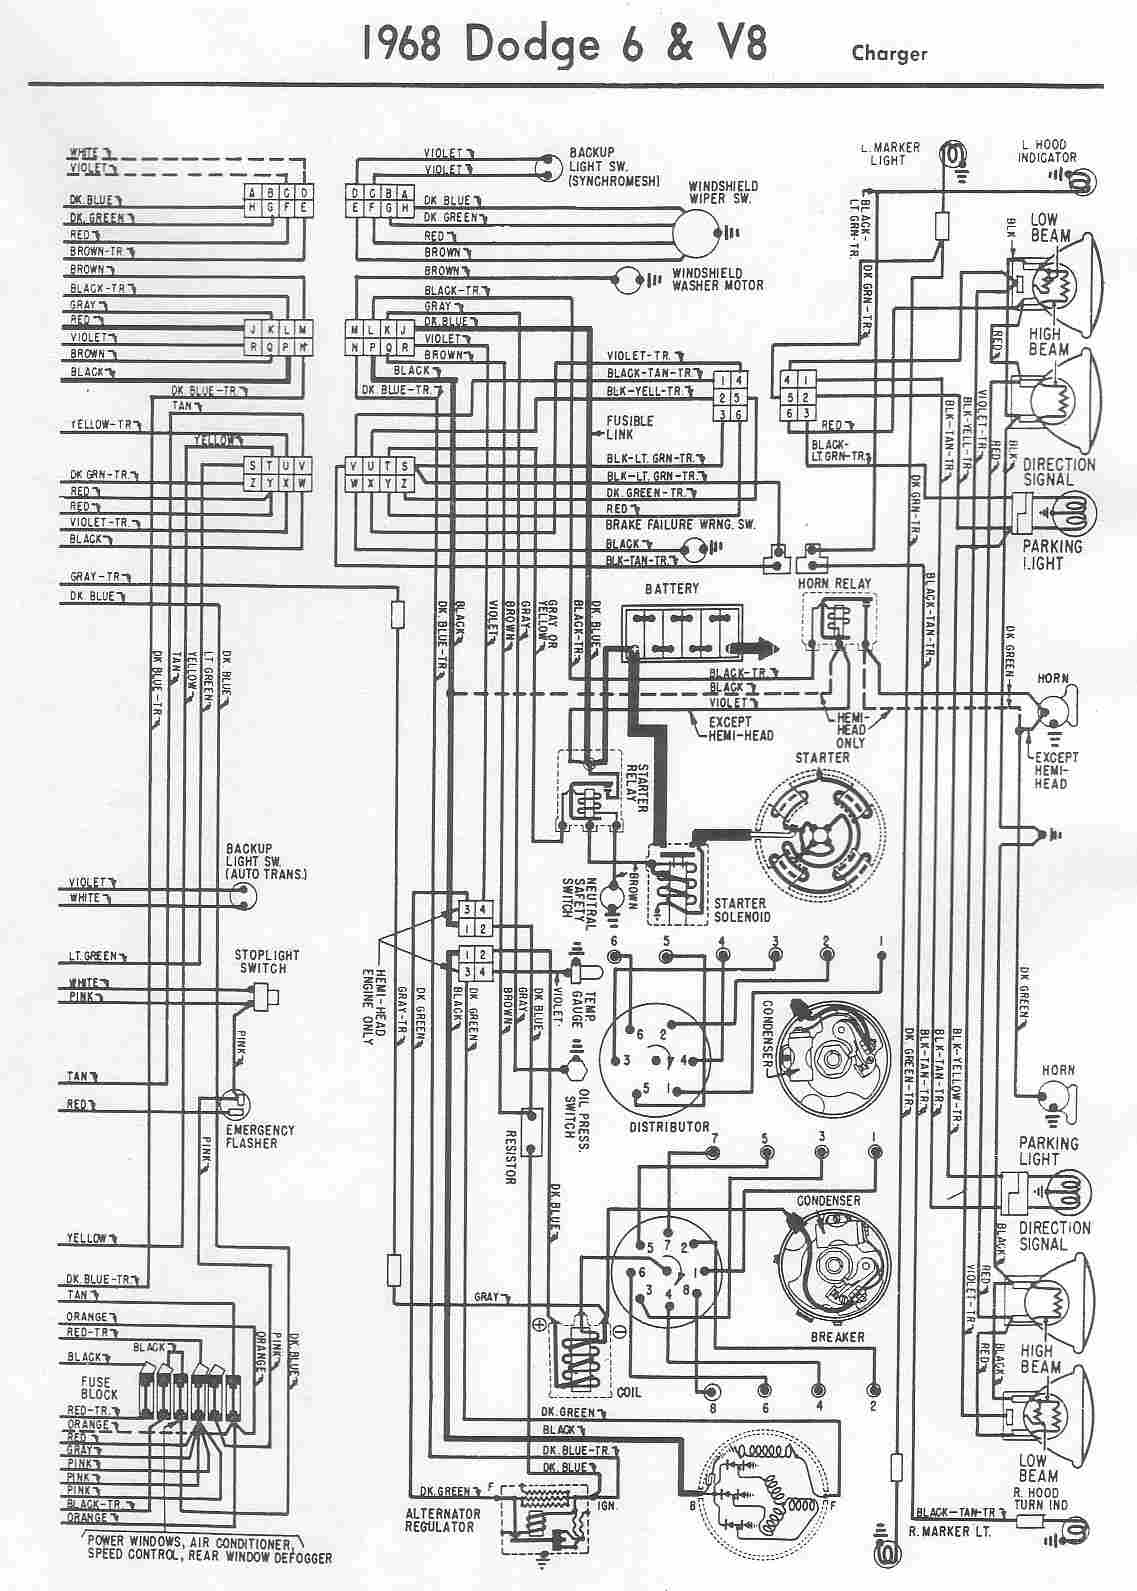 Diagram 1968 Coronet Wiring Diagram Full Version Hd Quality Wiring Diagram Ntdiagramsx18 Pergotende Roma It